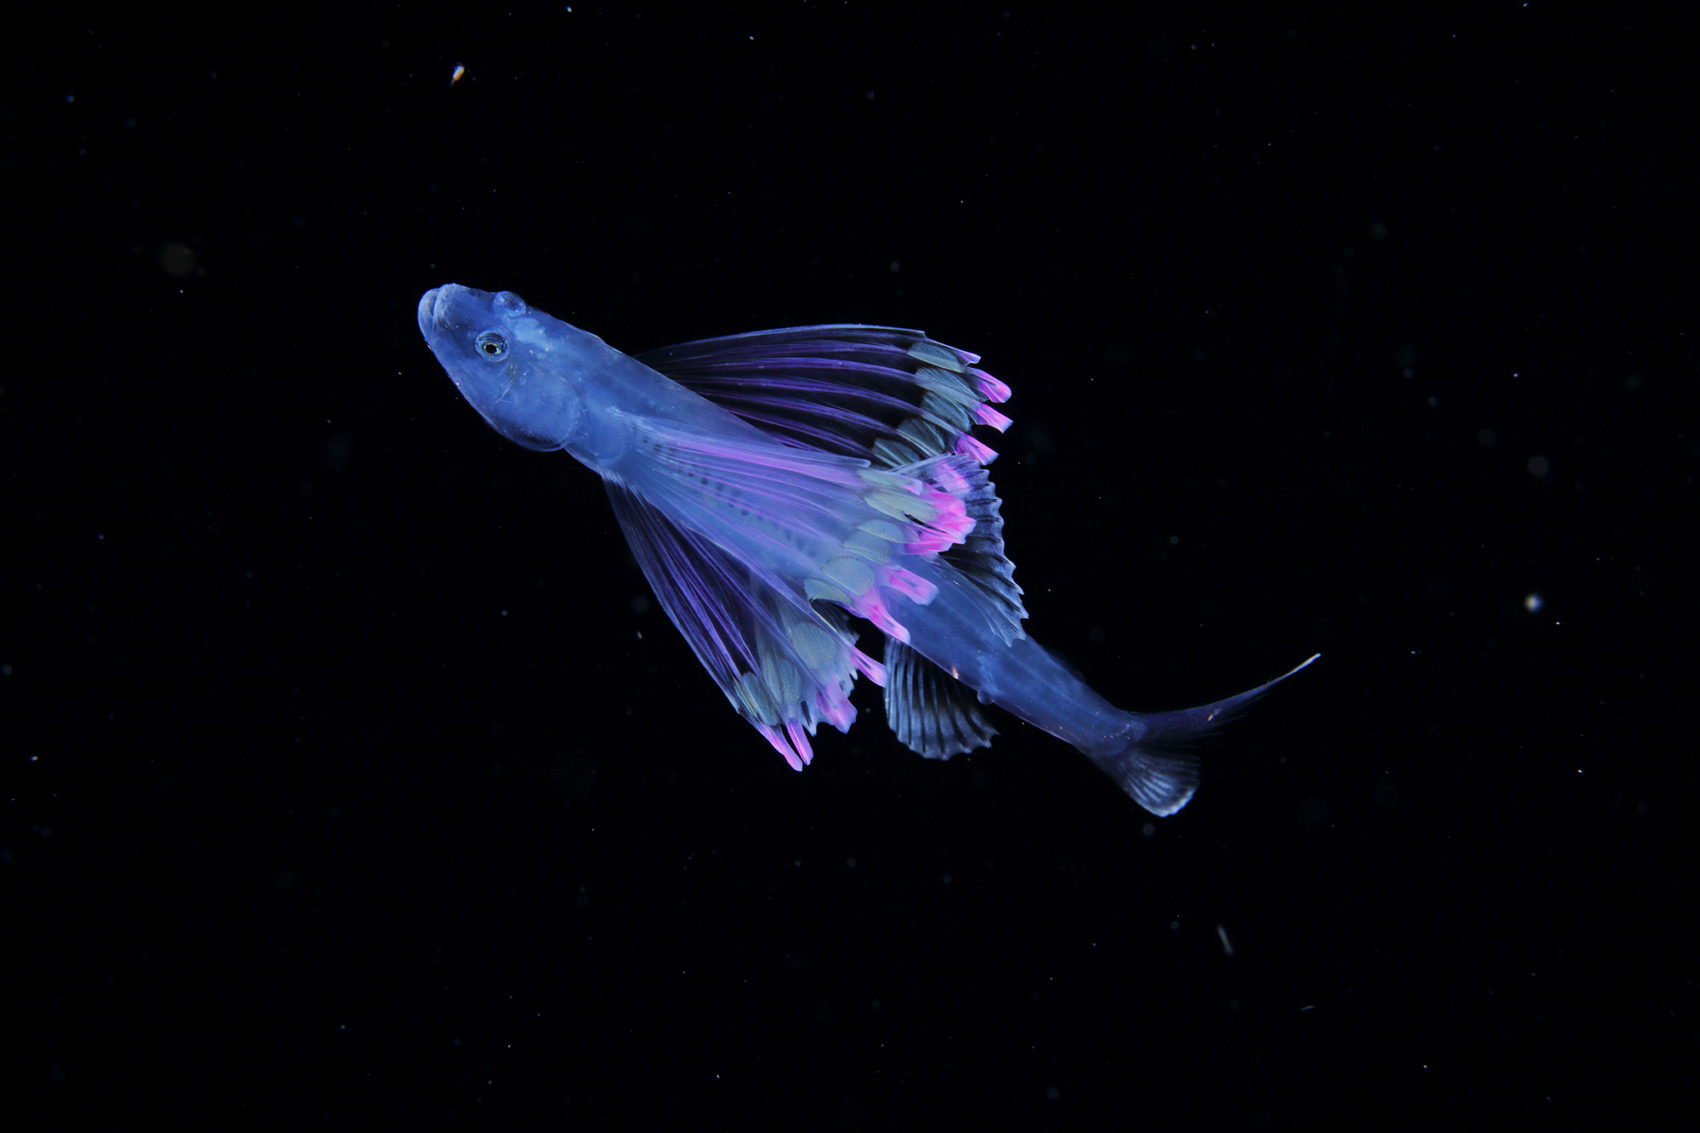 Luminous Plankton Captured in the Dark Waters of the Osezaki Sea